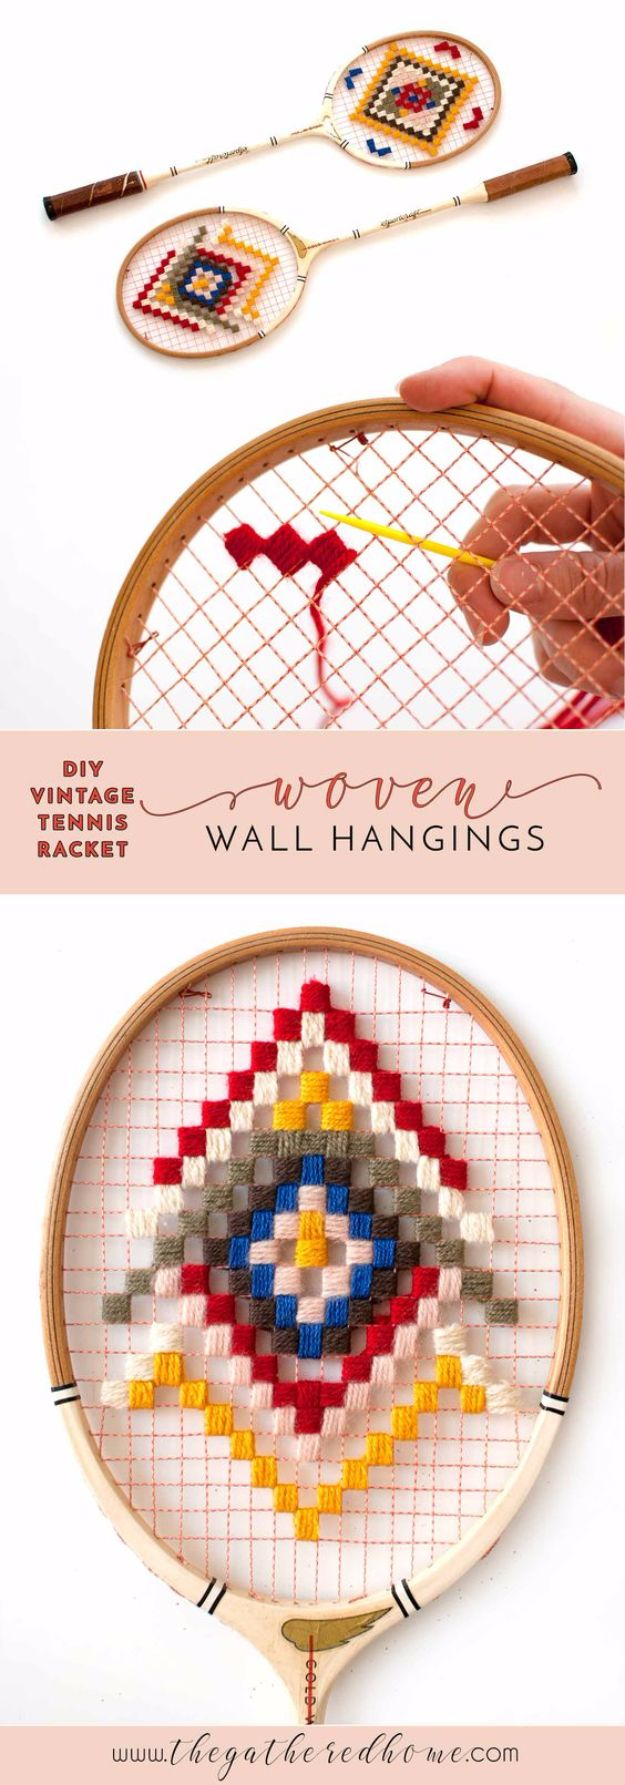 DIY Ideas With Yarn and Best Yarn Crafts - DIY Vintage Tennis Racket Wall Hangings - Wall Hangings, Easy Dream Catchers, Crochet Ideas for Teens, Adults and Kids - Knitting , No Sew and Weaving Projects Make Awesome Wall Art and Home Decor on A Budget http://diyjoy.com/diy-ideas-yarn